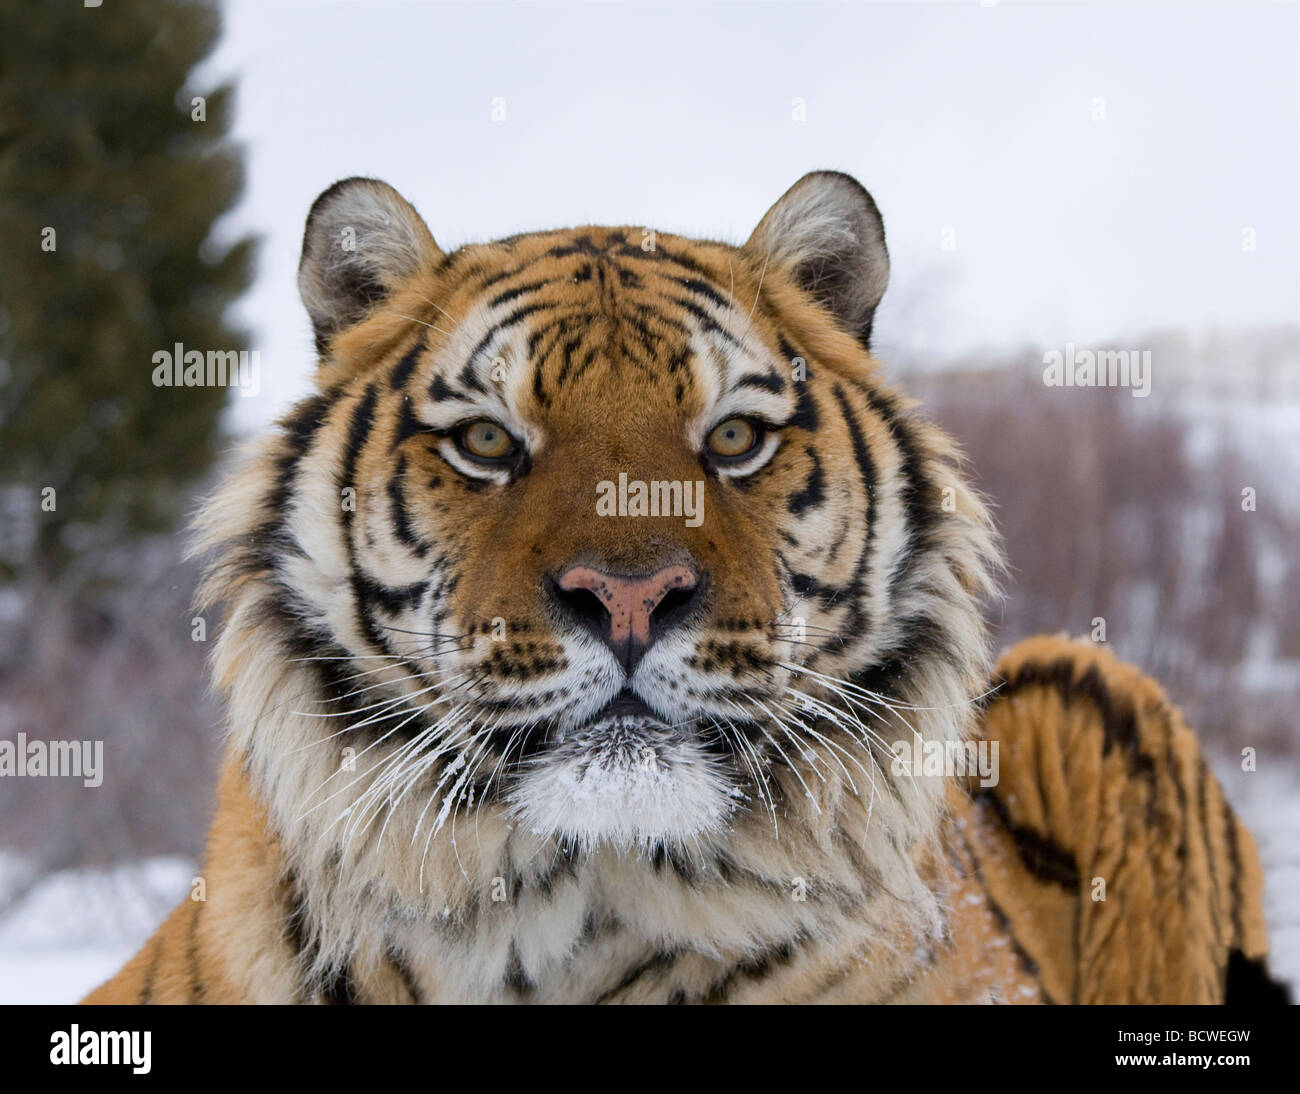 Close-up of a Siberian tiger (Panthera tigris altaica) Stock Photo